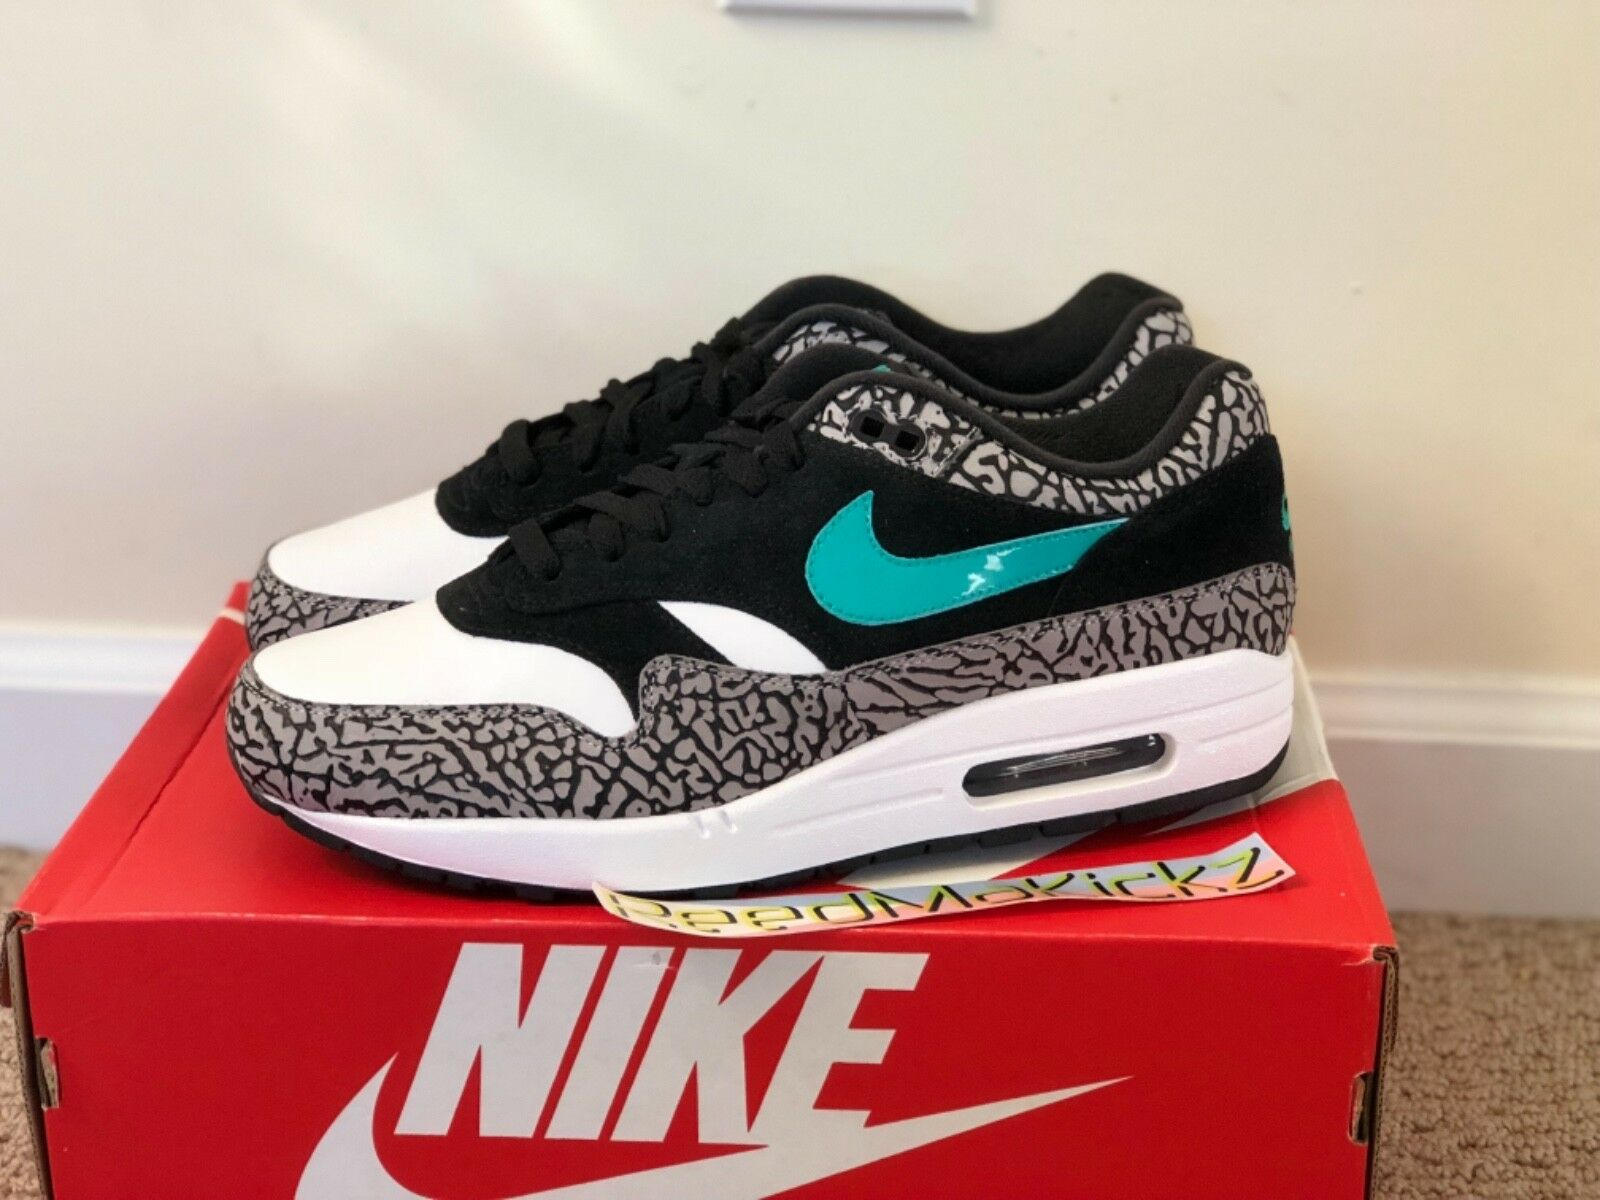 Nike Air Max 1 Premium Retro 2017 Atmos NYC Elephant Mens sizes 908366 001